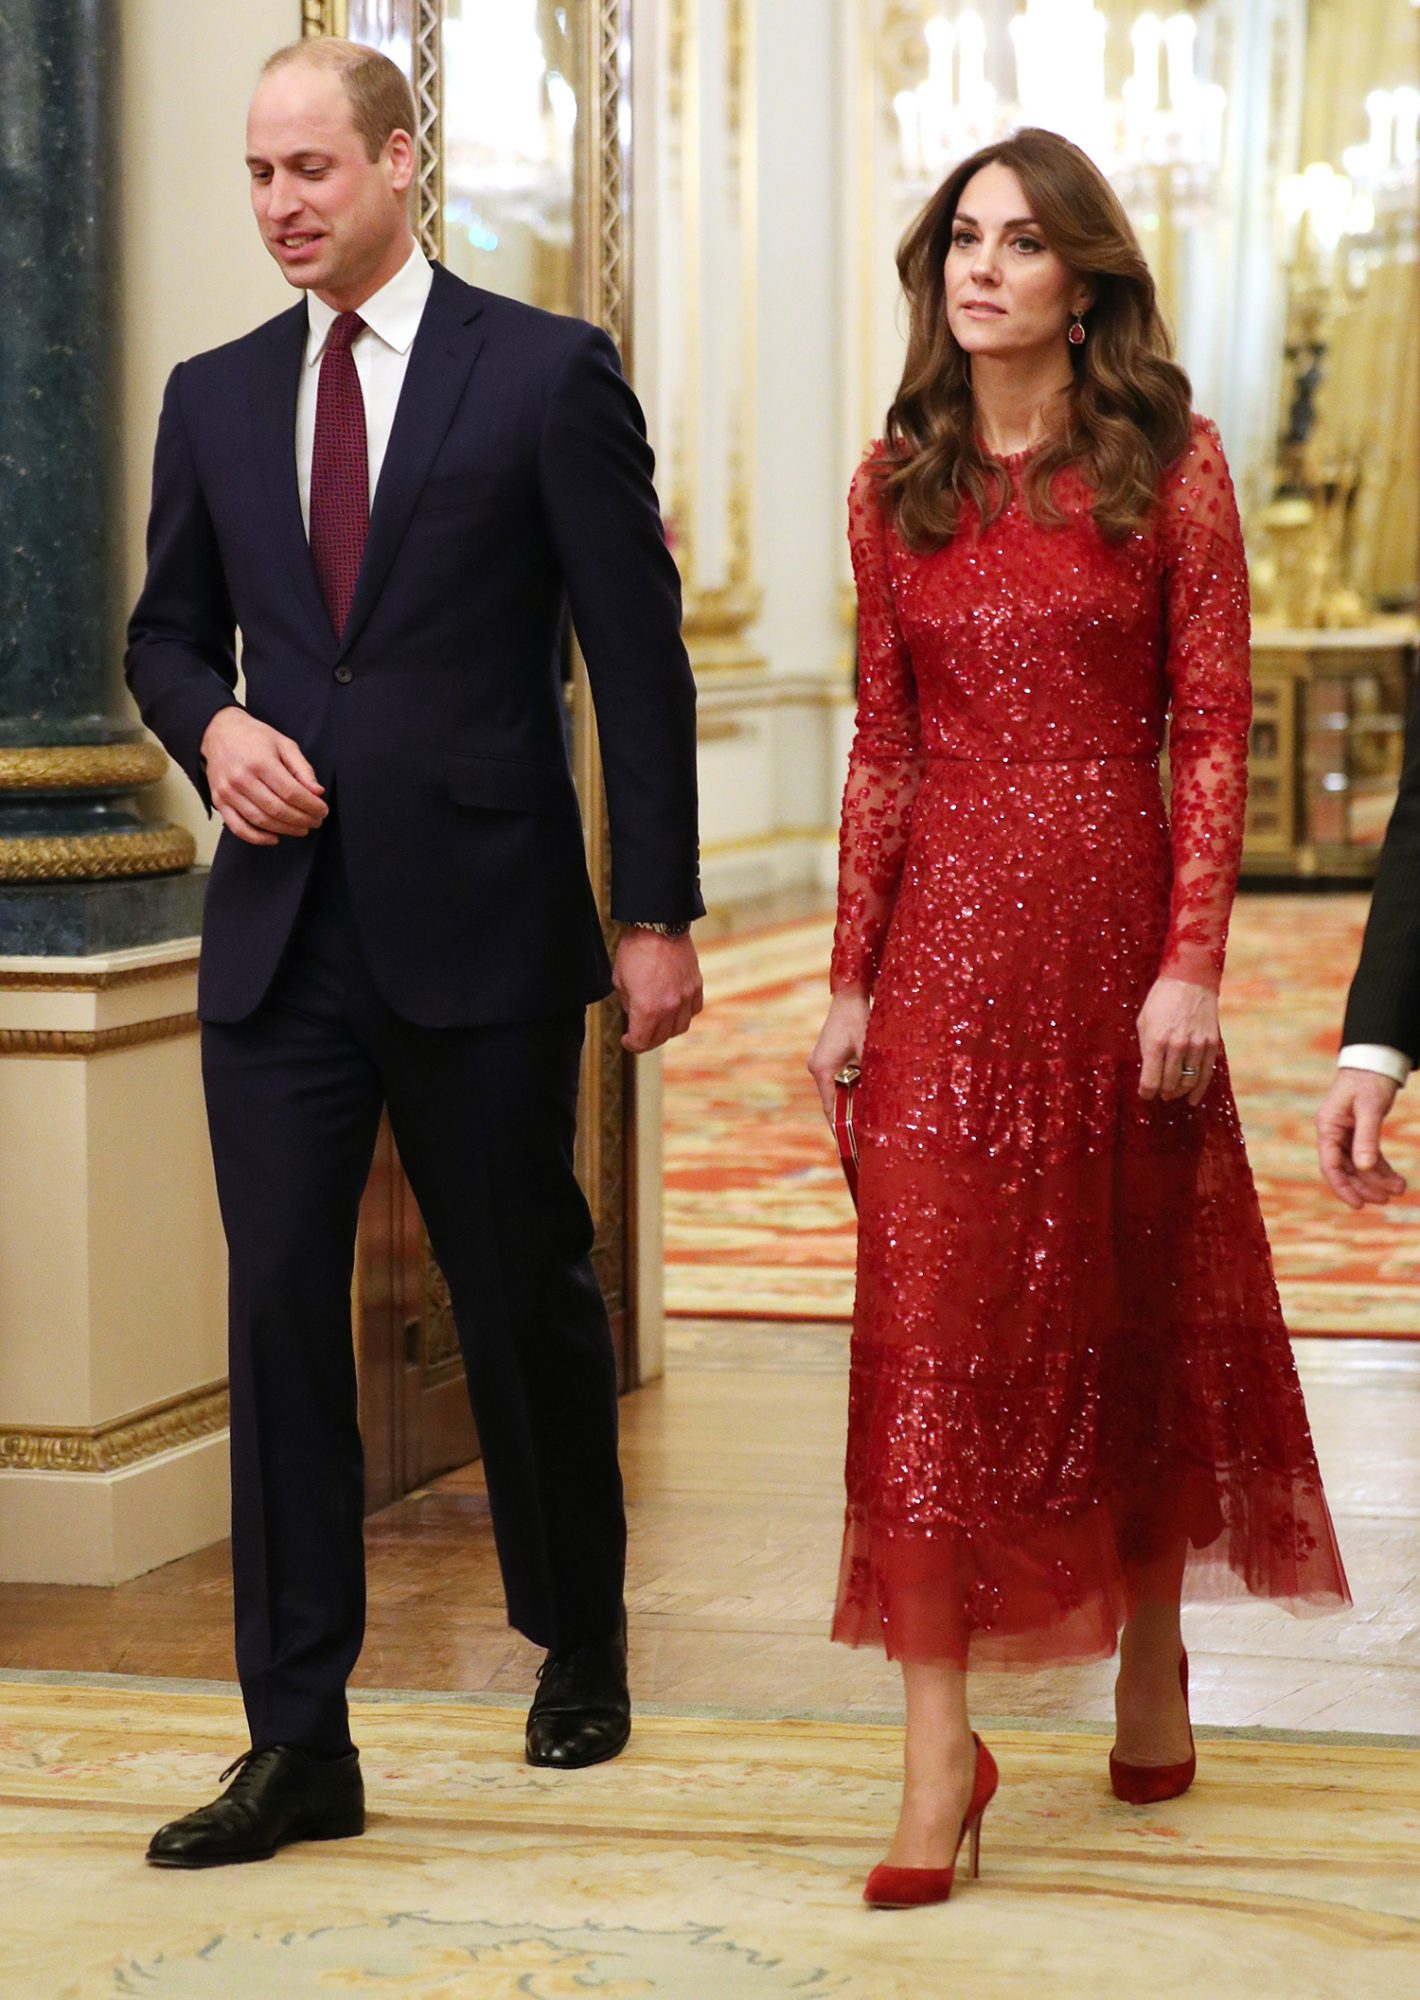 The Duke and Duchess of Cambridge arrive at a reception at London's Buckingham Palace to mark the UK-Africa Investment Summit.